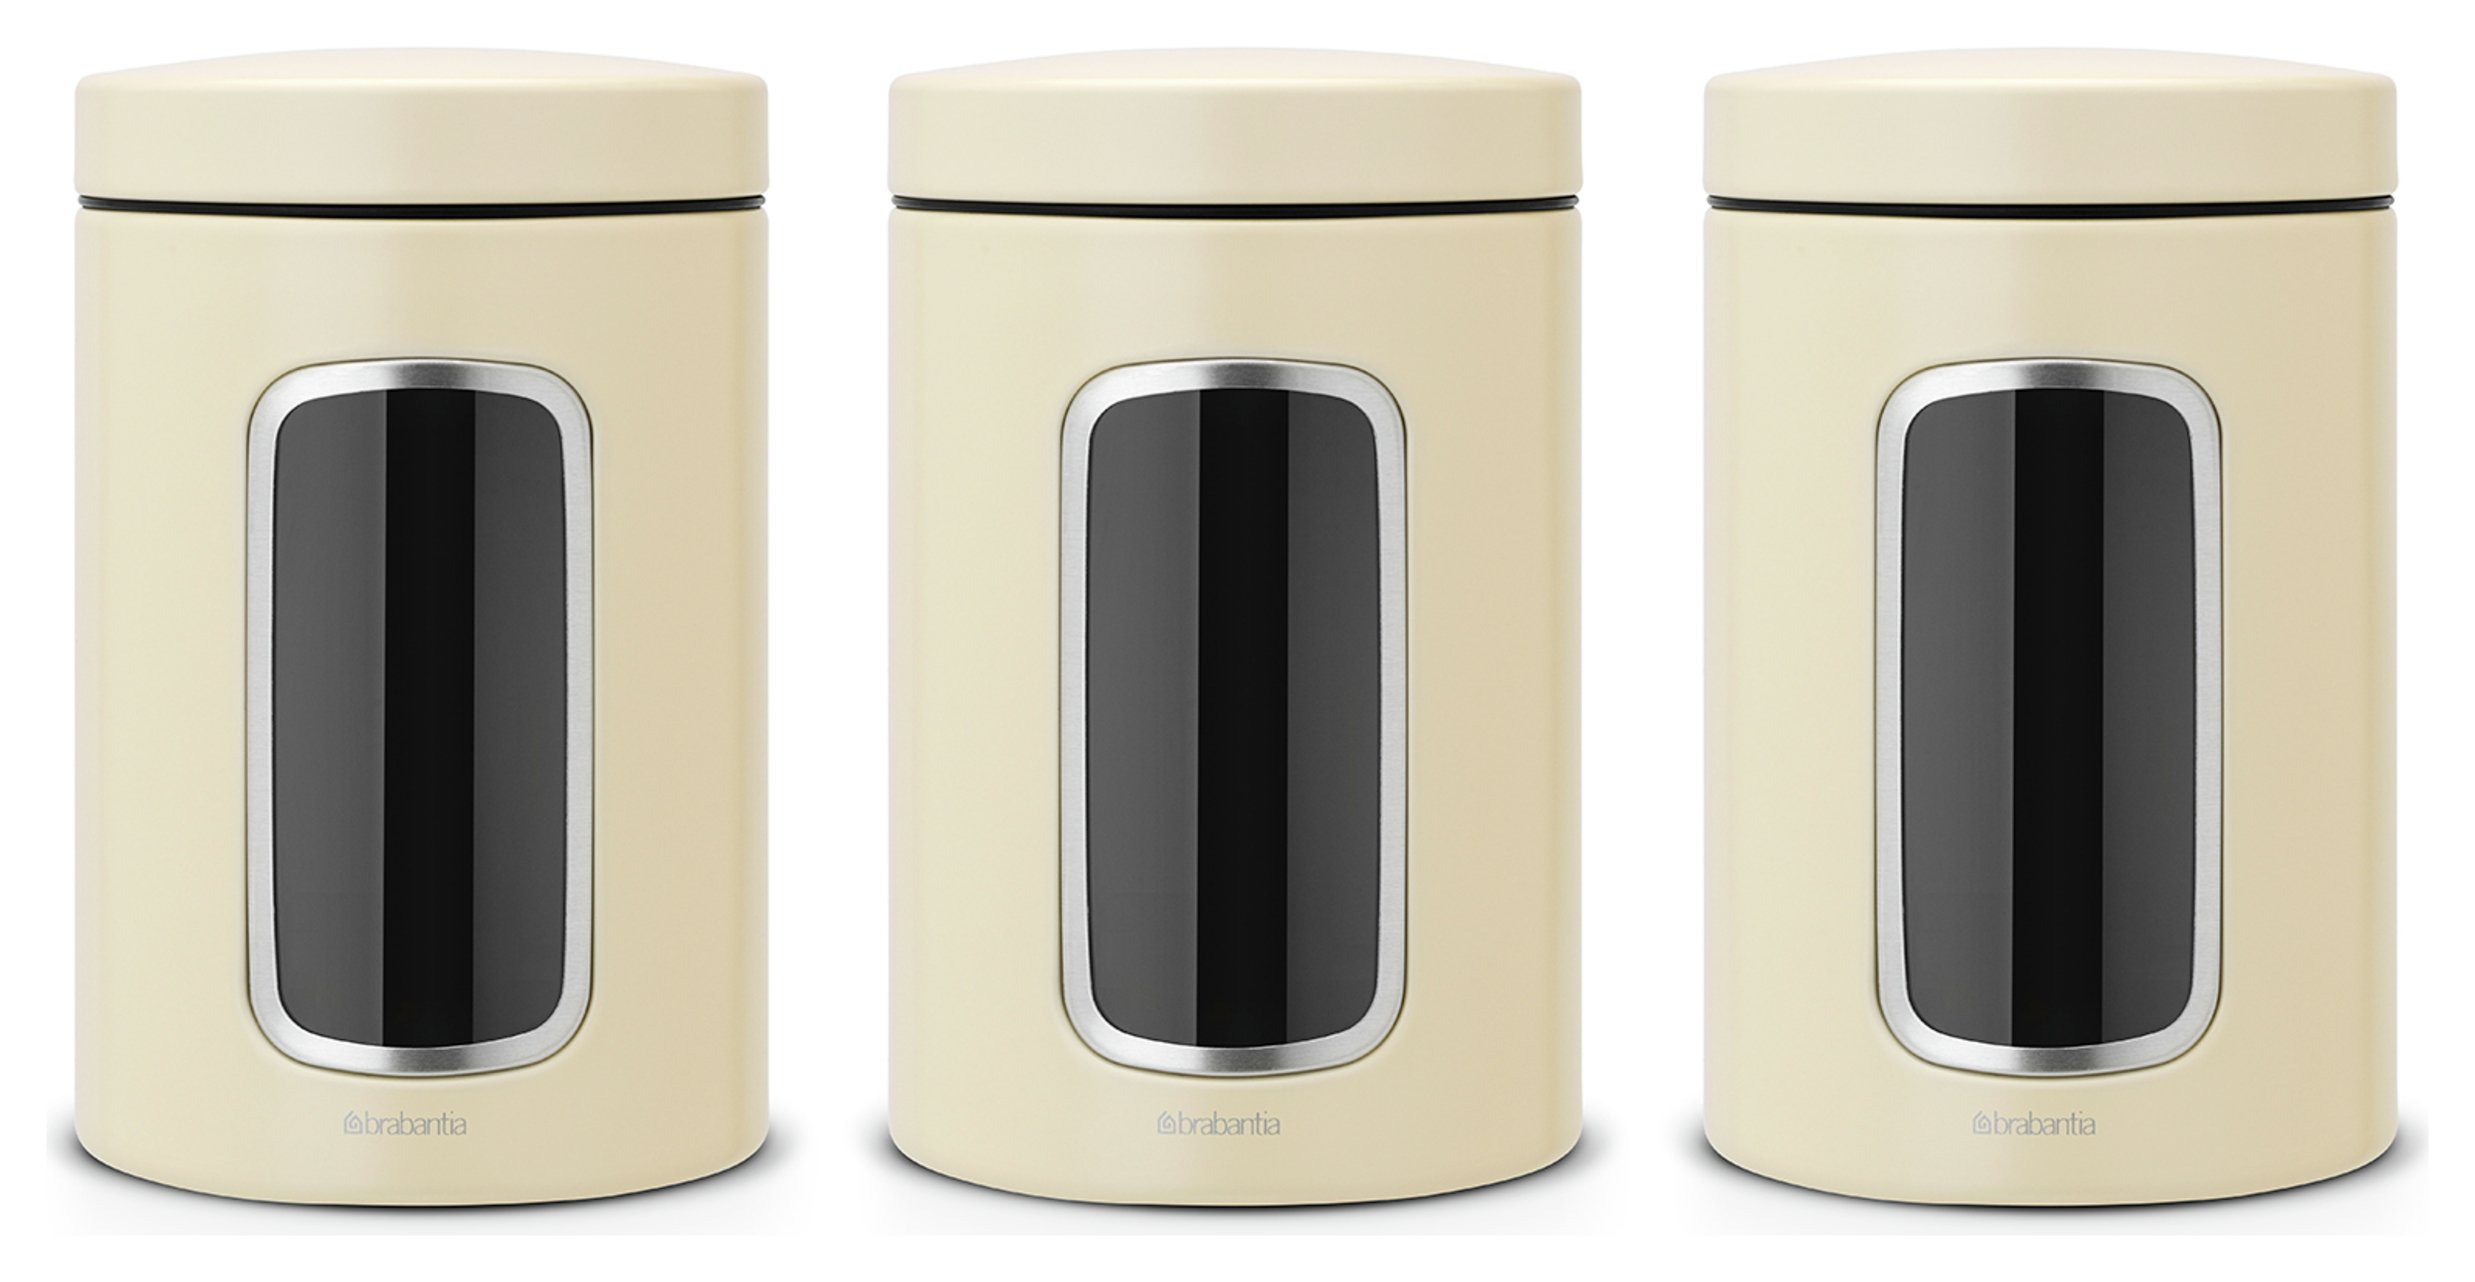 Image of Brabantia Window Canister Set - Almond